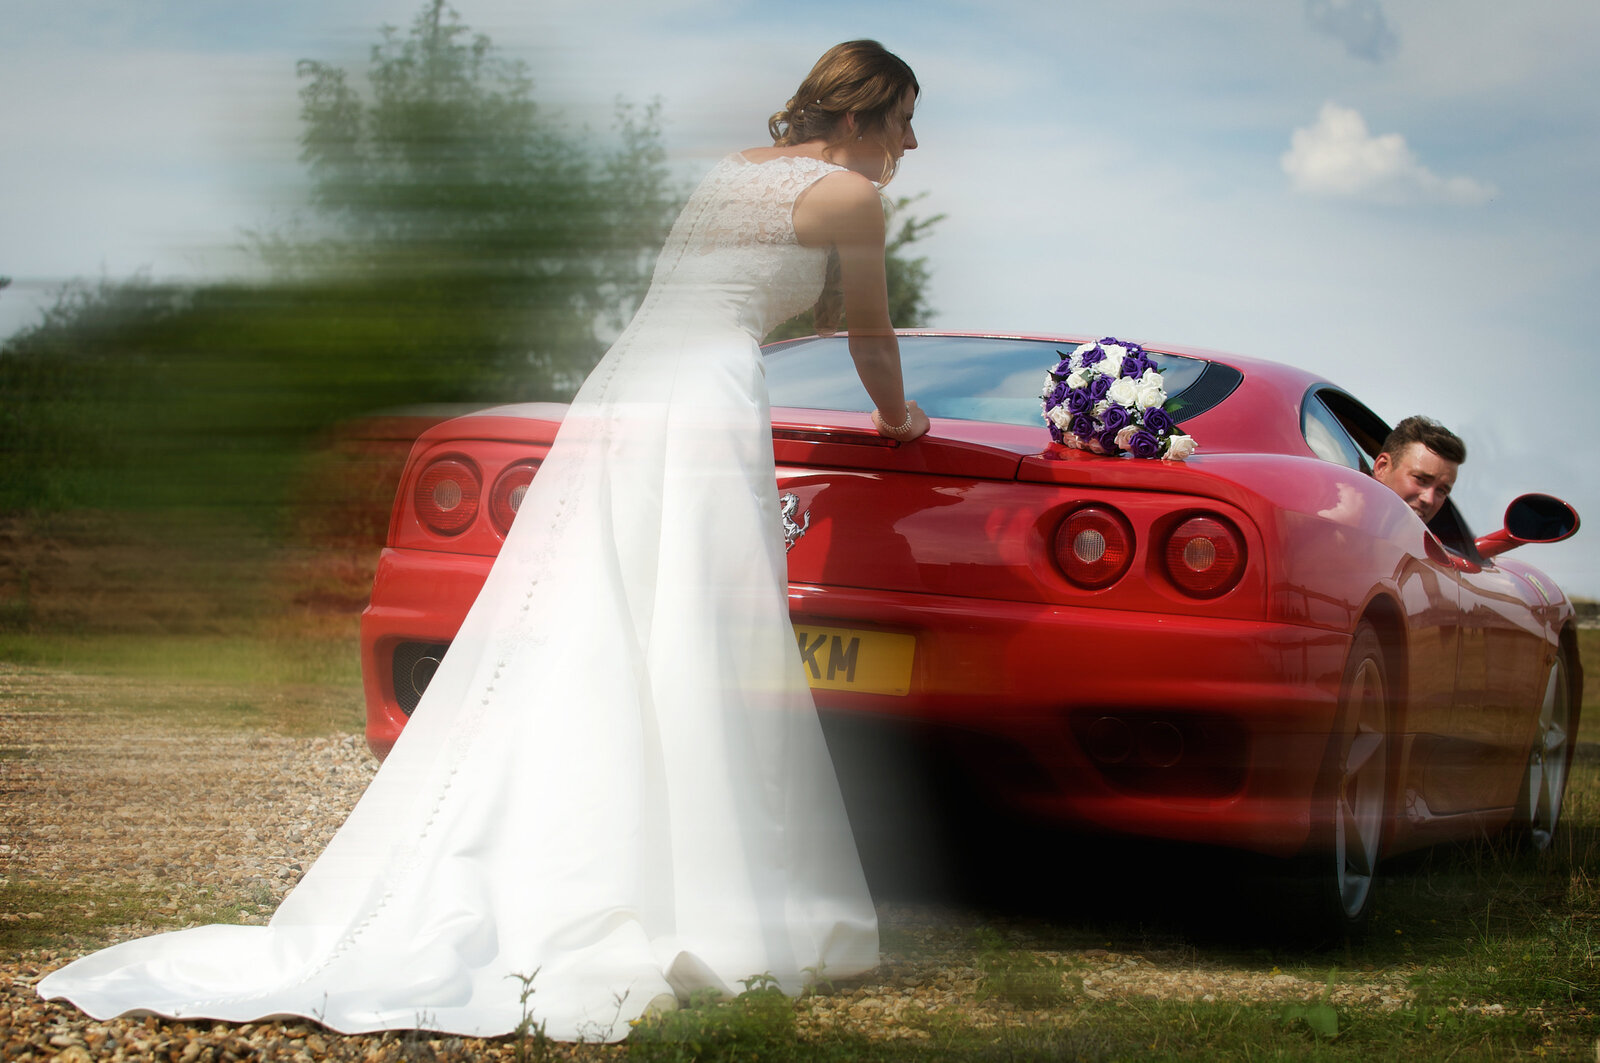 Bride pushing car